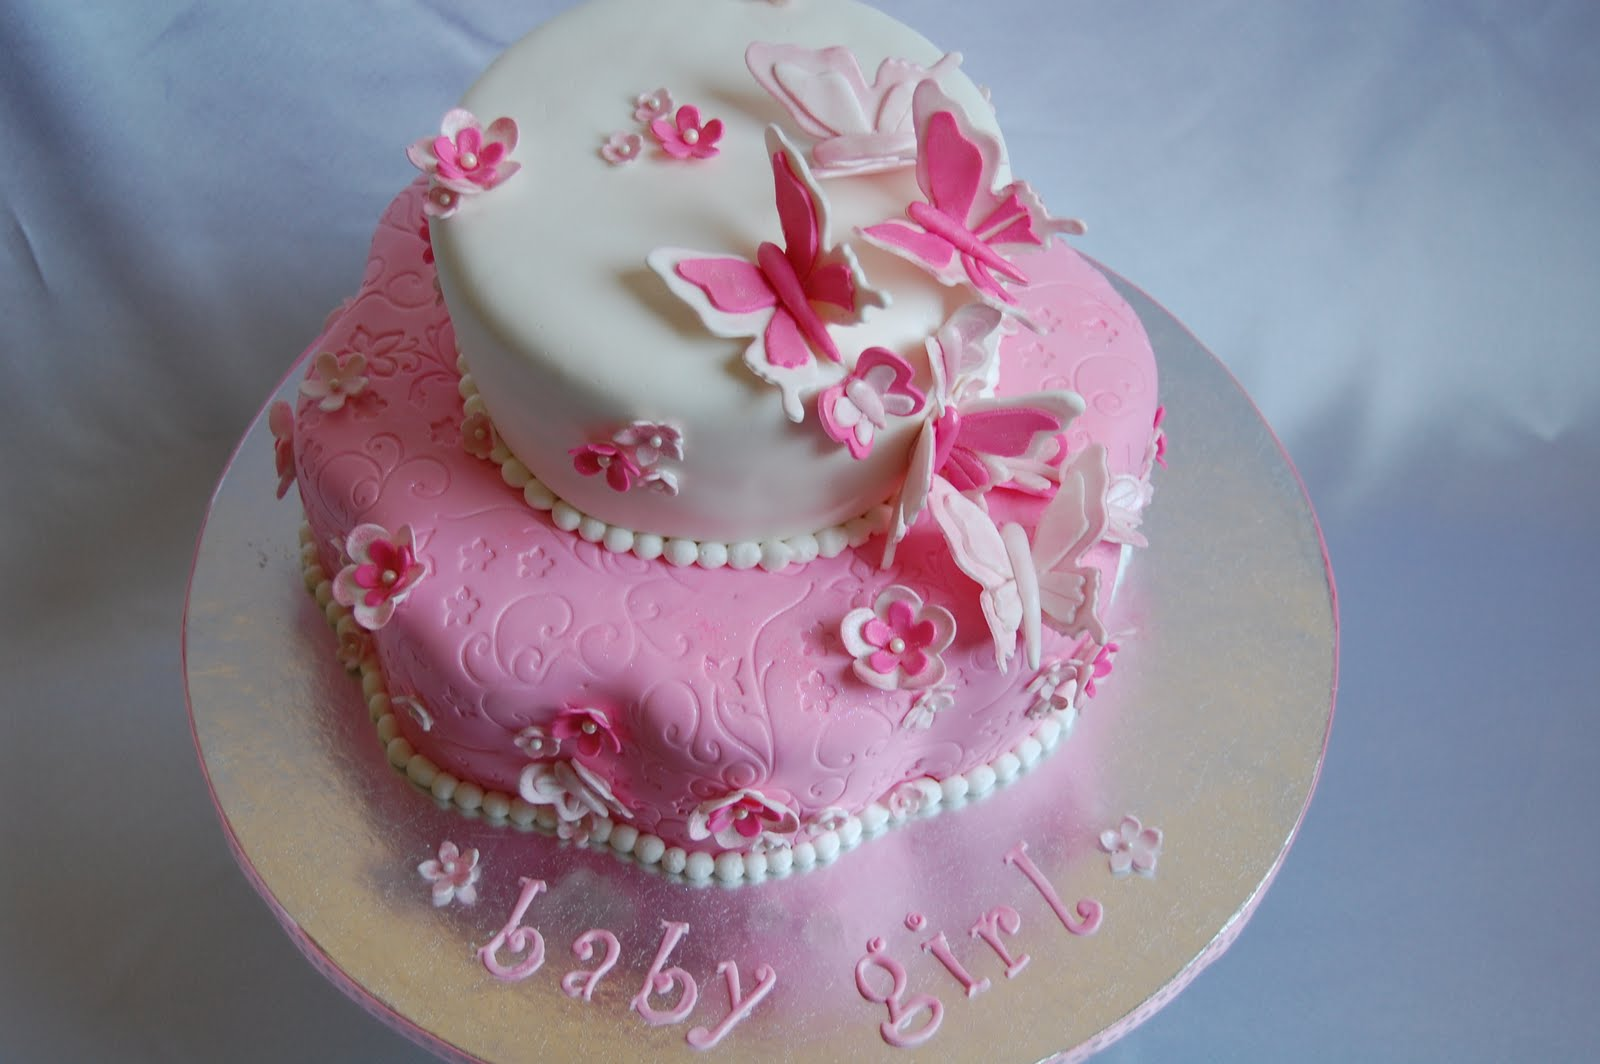 This adorable cake was an order for a special friend expecting a ...